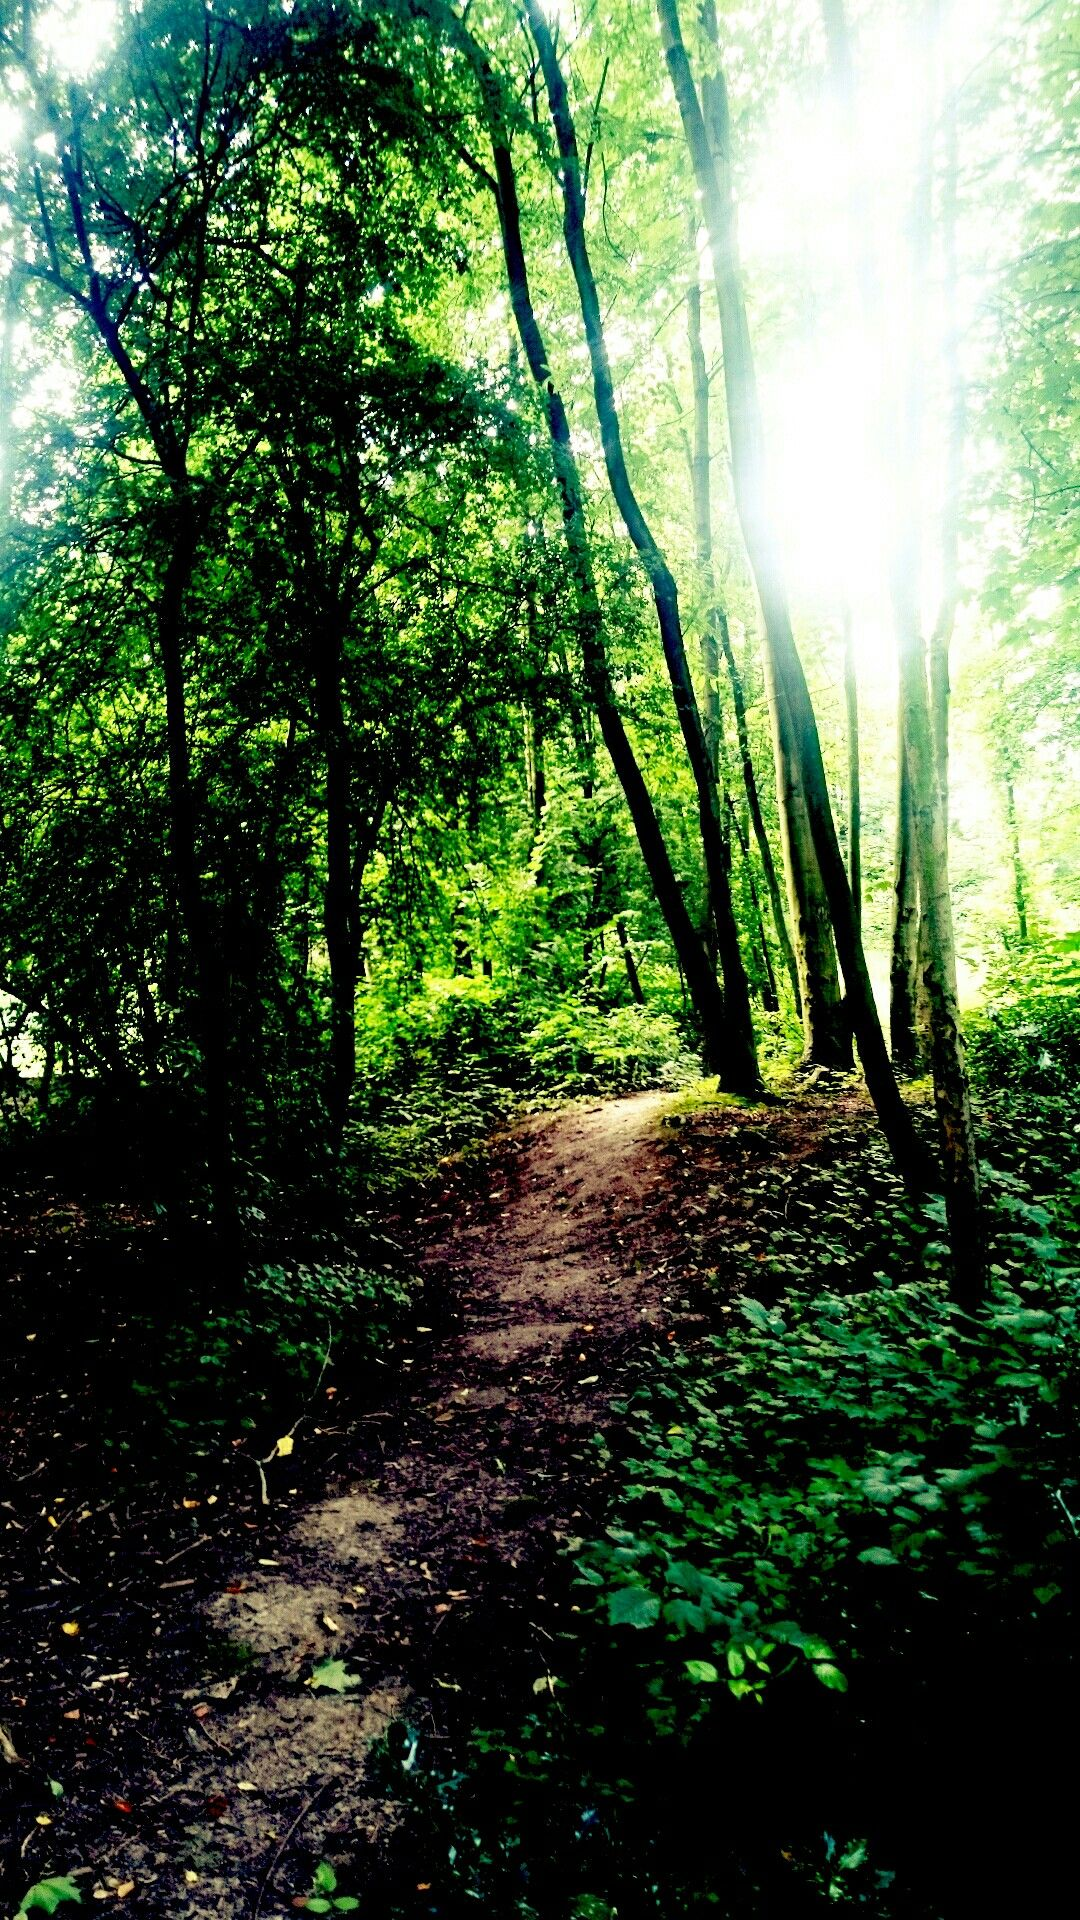 Sun in the Forrest